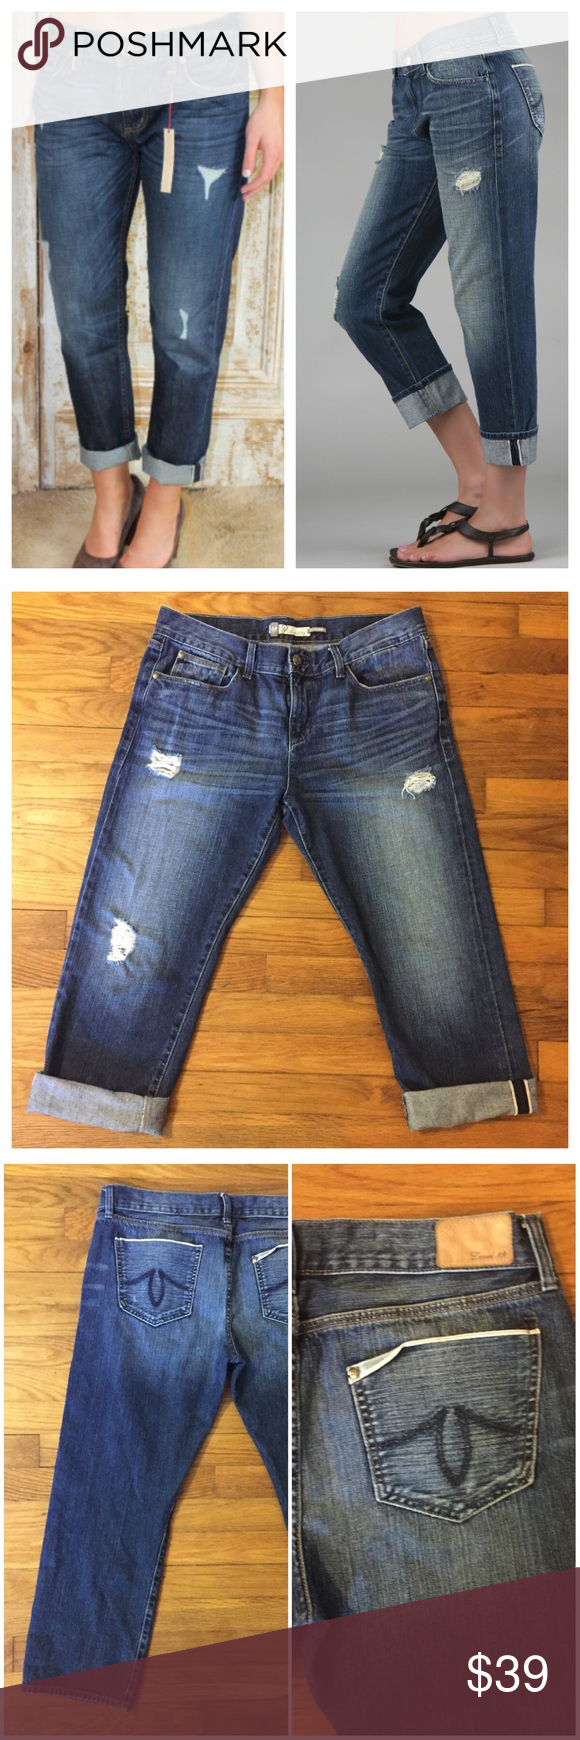 Level 99 Anthropologie Boyfriend Destroyed Jeans Level 99 Anthropologie Boyfriend Destroyed Capri Ankle Jeans --- size 29 --- good preloved condition --- no imperfections --- more details to come ---  Anthropologie Jeans Boyfriend